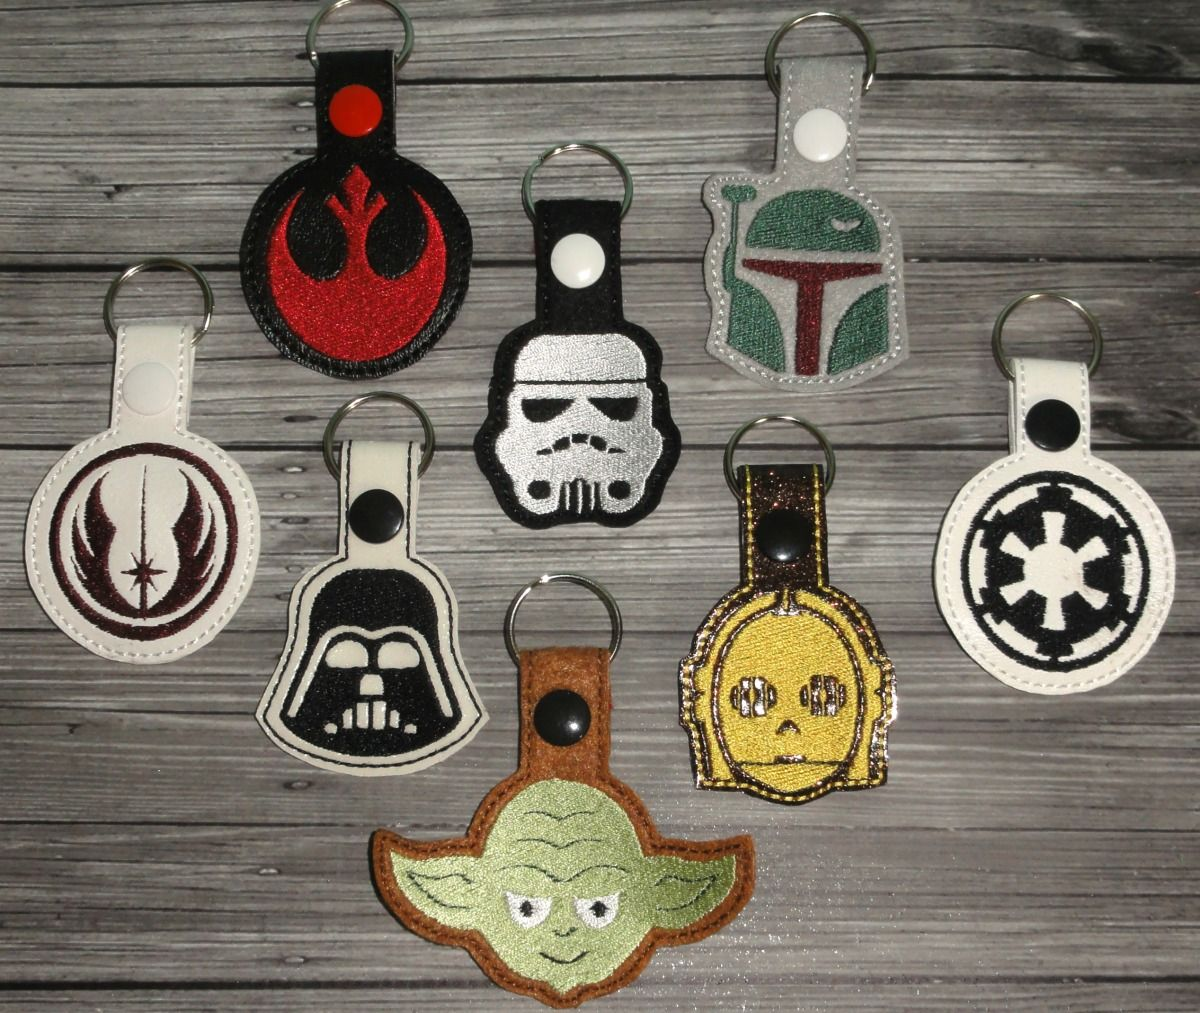 Star wars keychain set ith embroidery design uncle matt